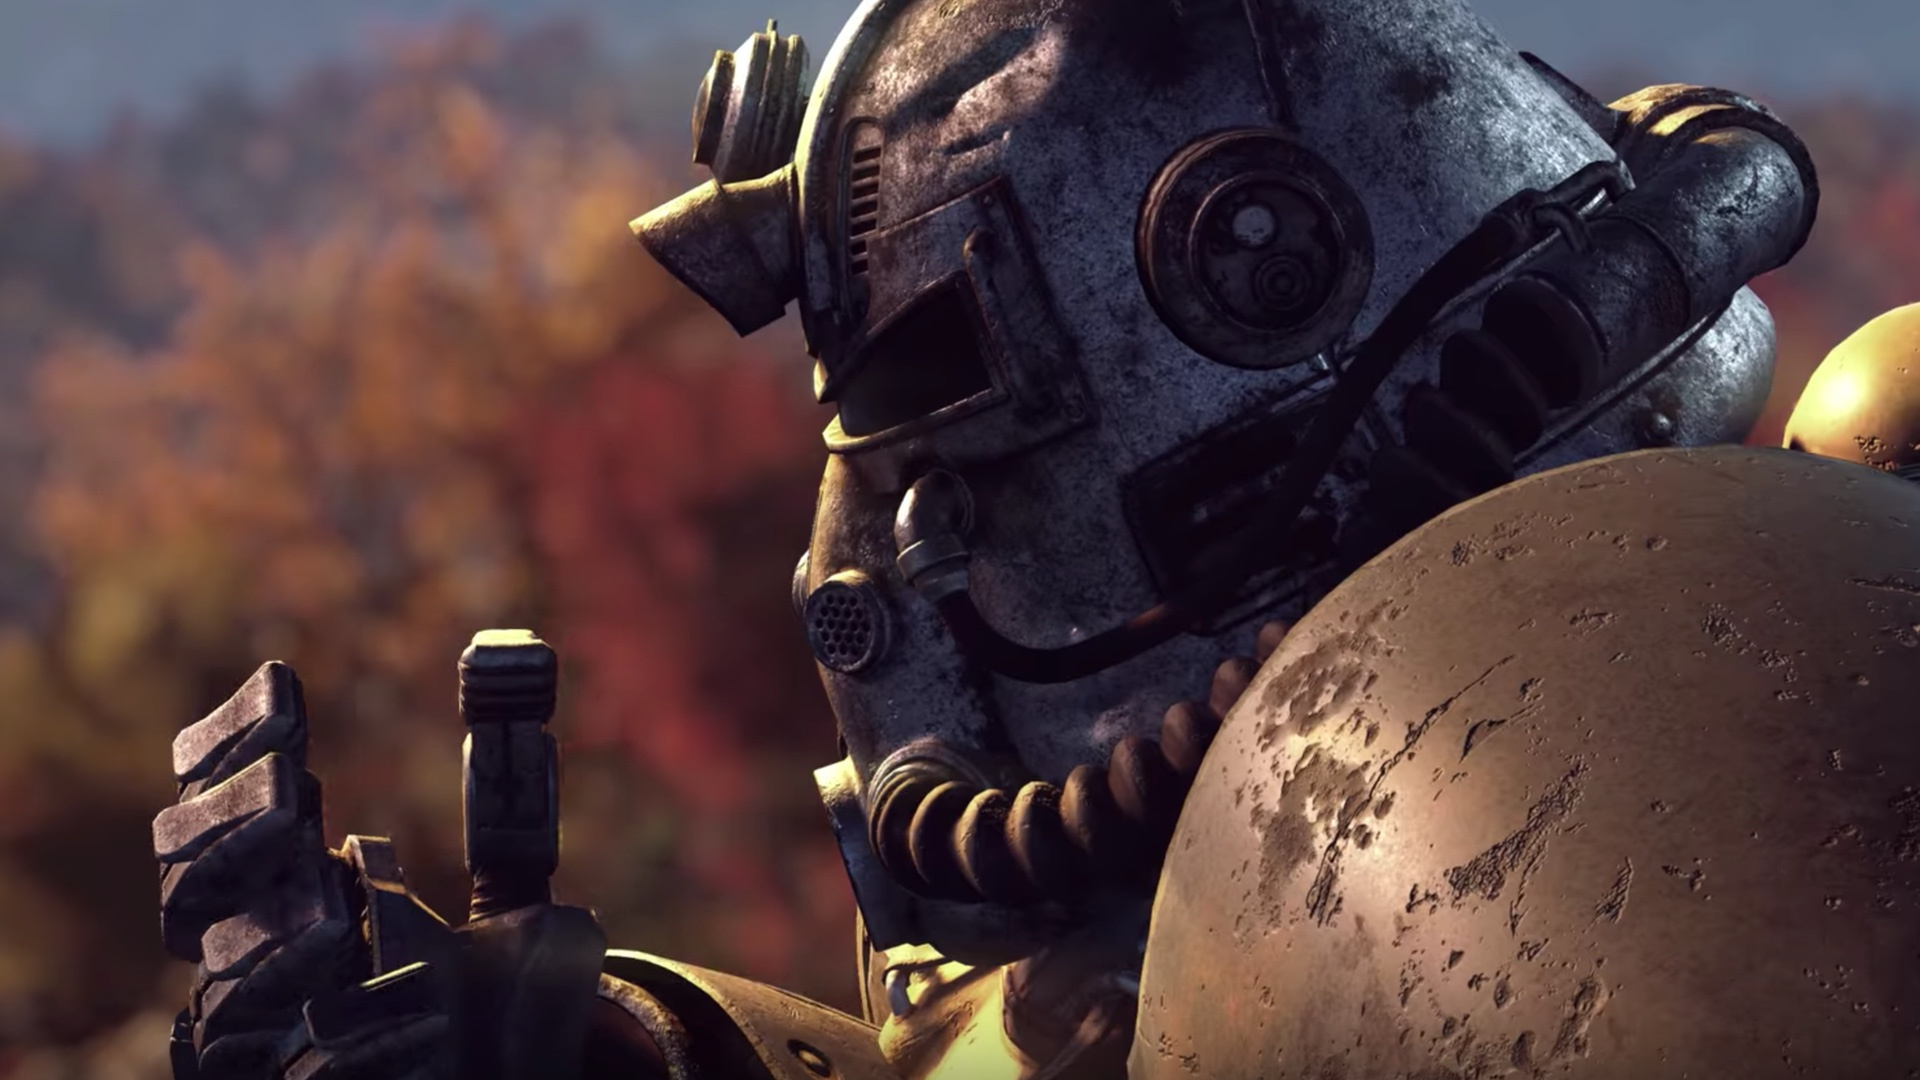 Hands On: Fallout 76's PS4 Performance Is Embarrassing in